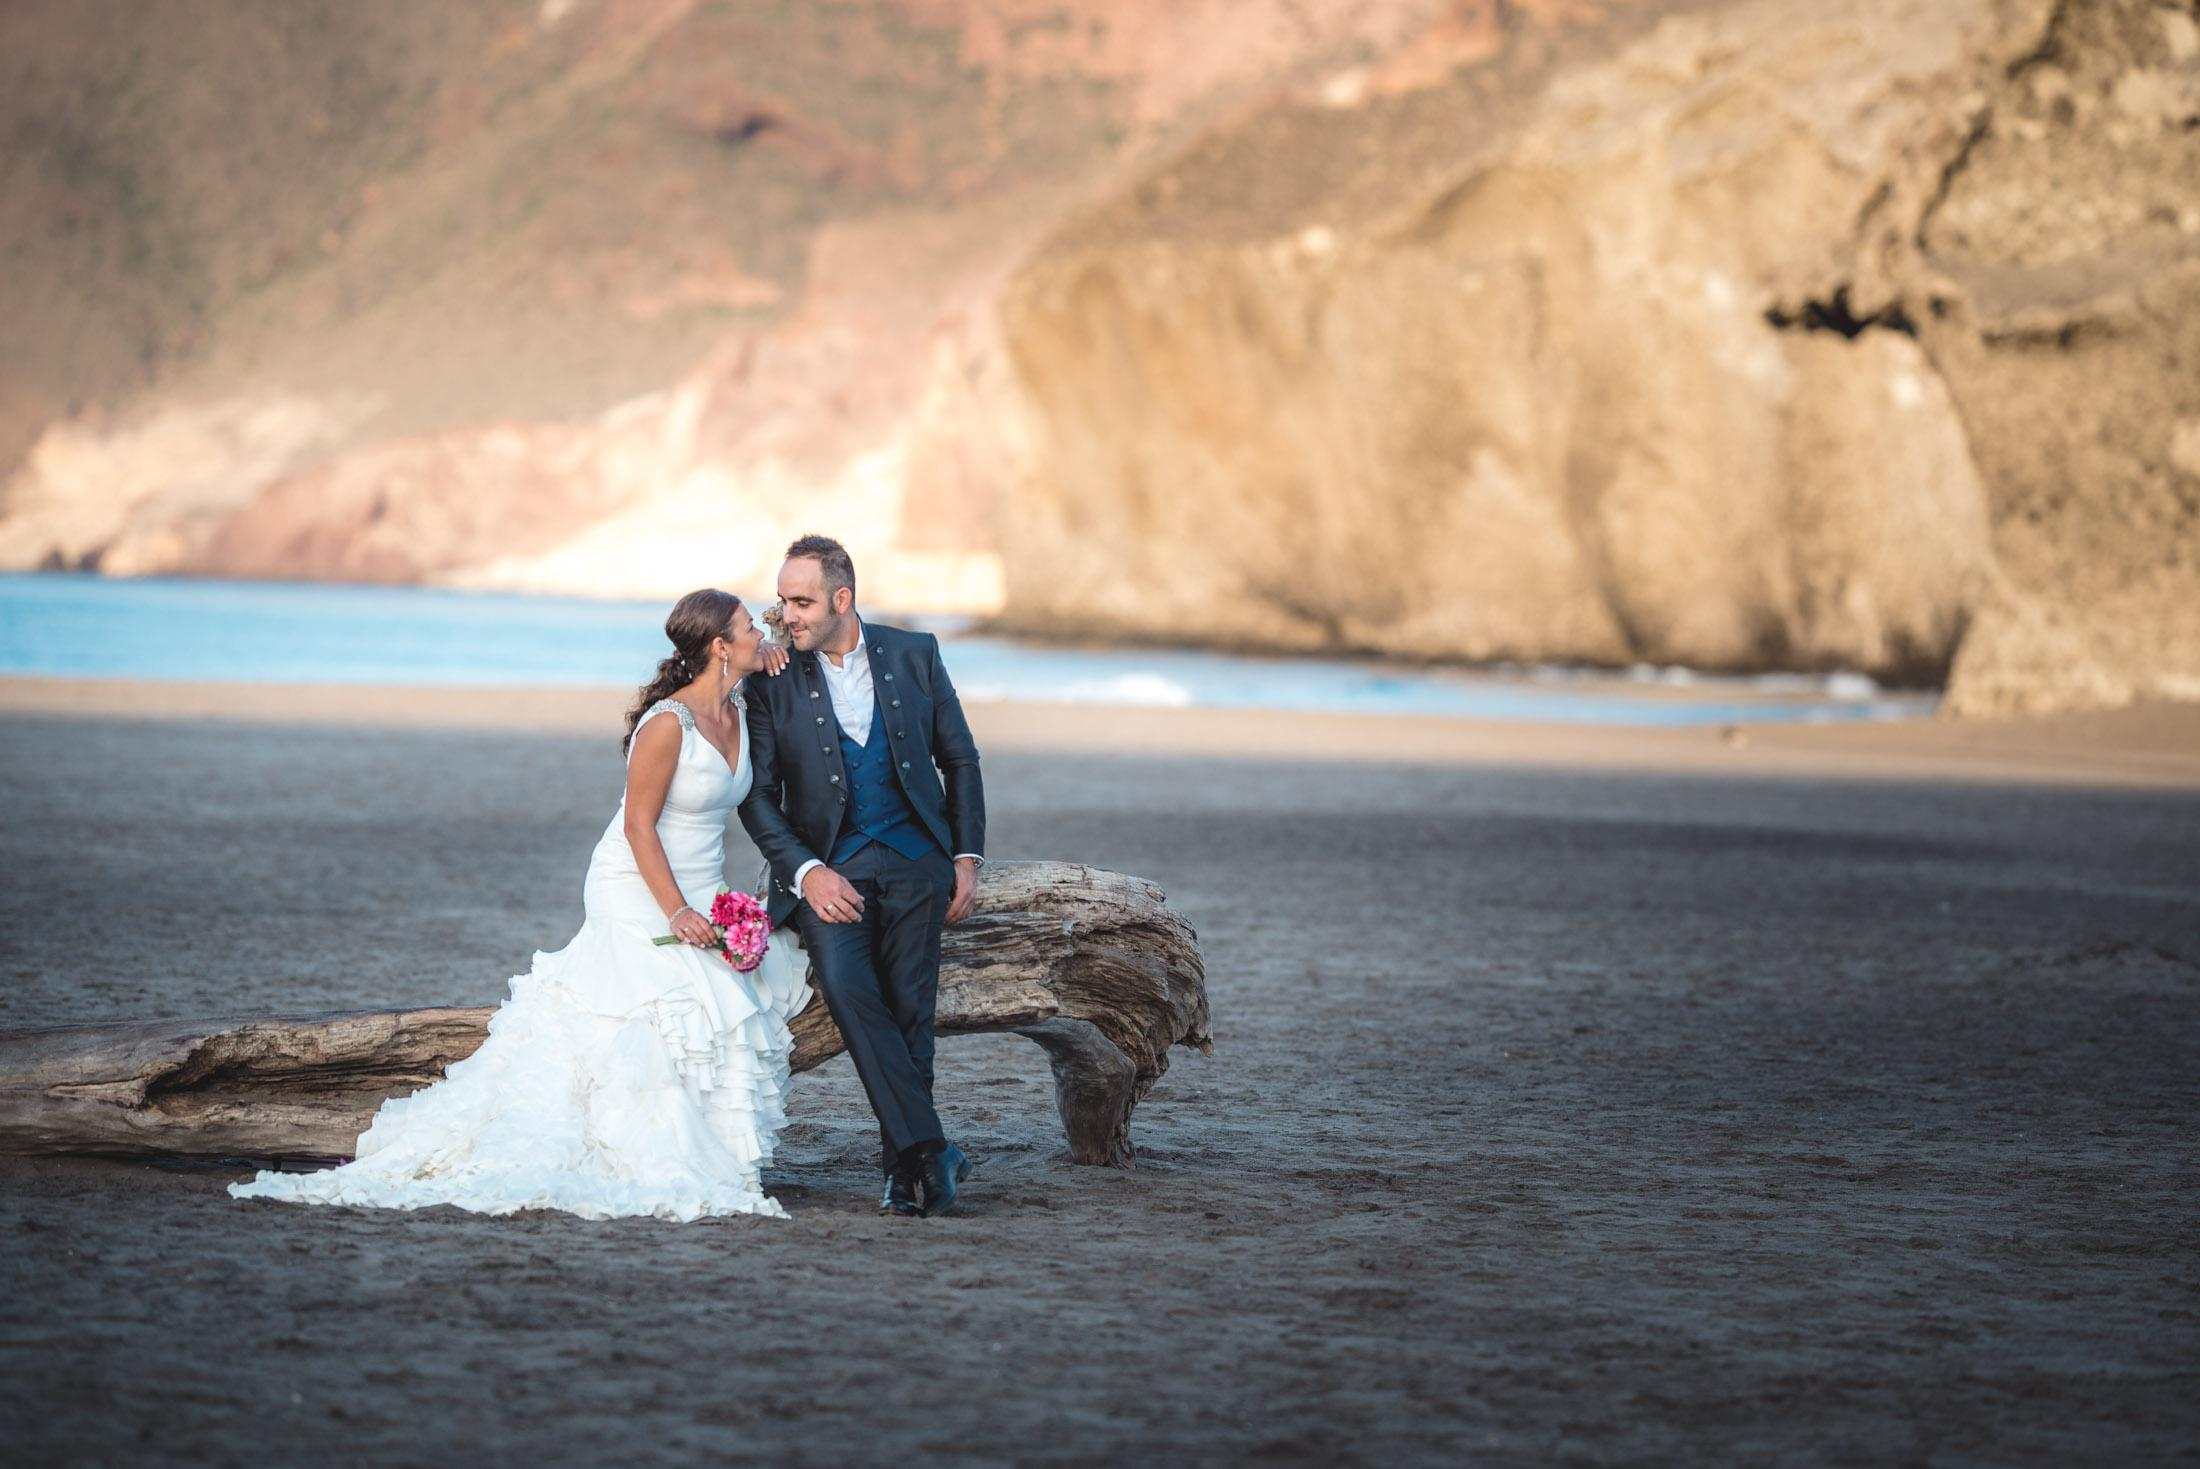 ost Boda en la playa de Monsul 03